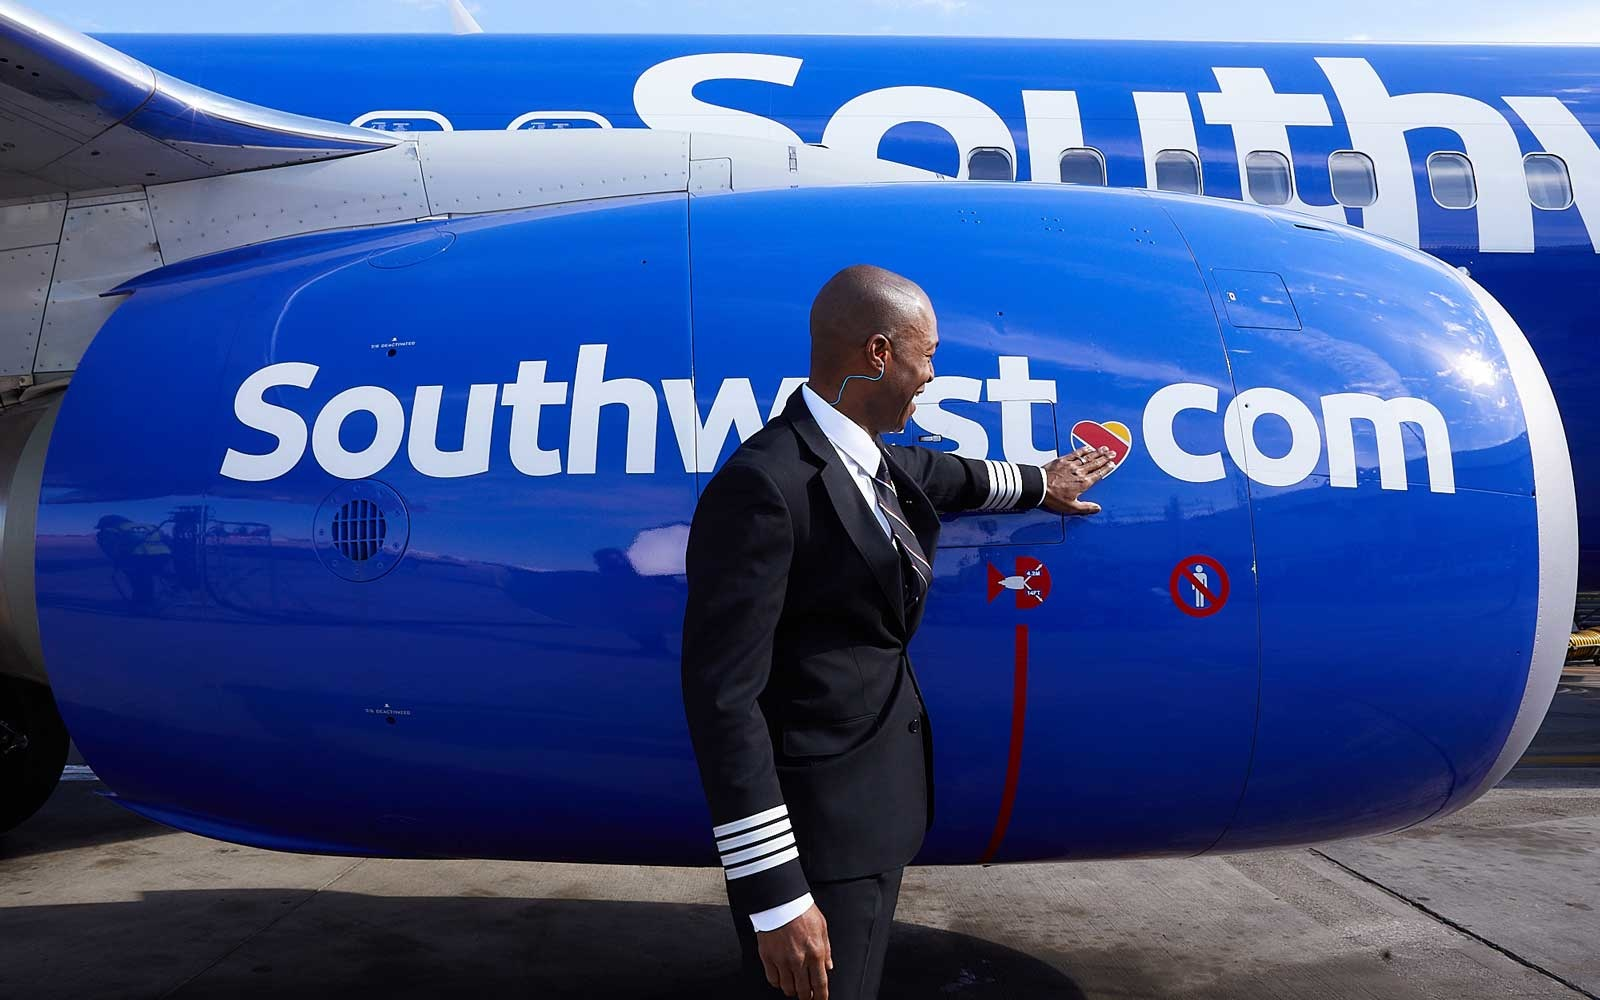 How to Get a Job at Southwest Airlines and Fly for Free